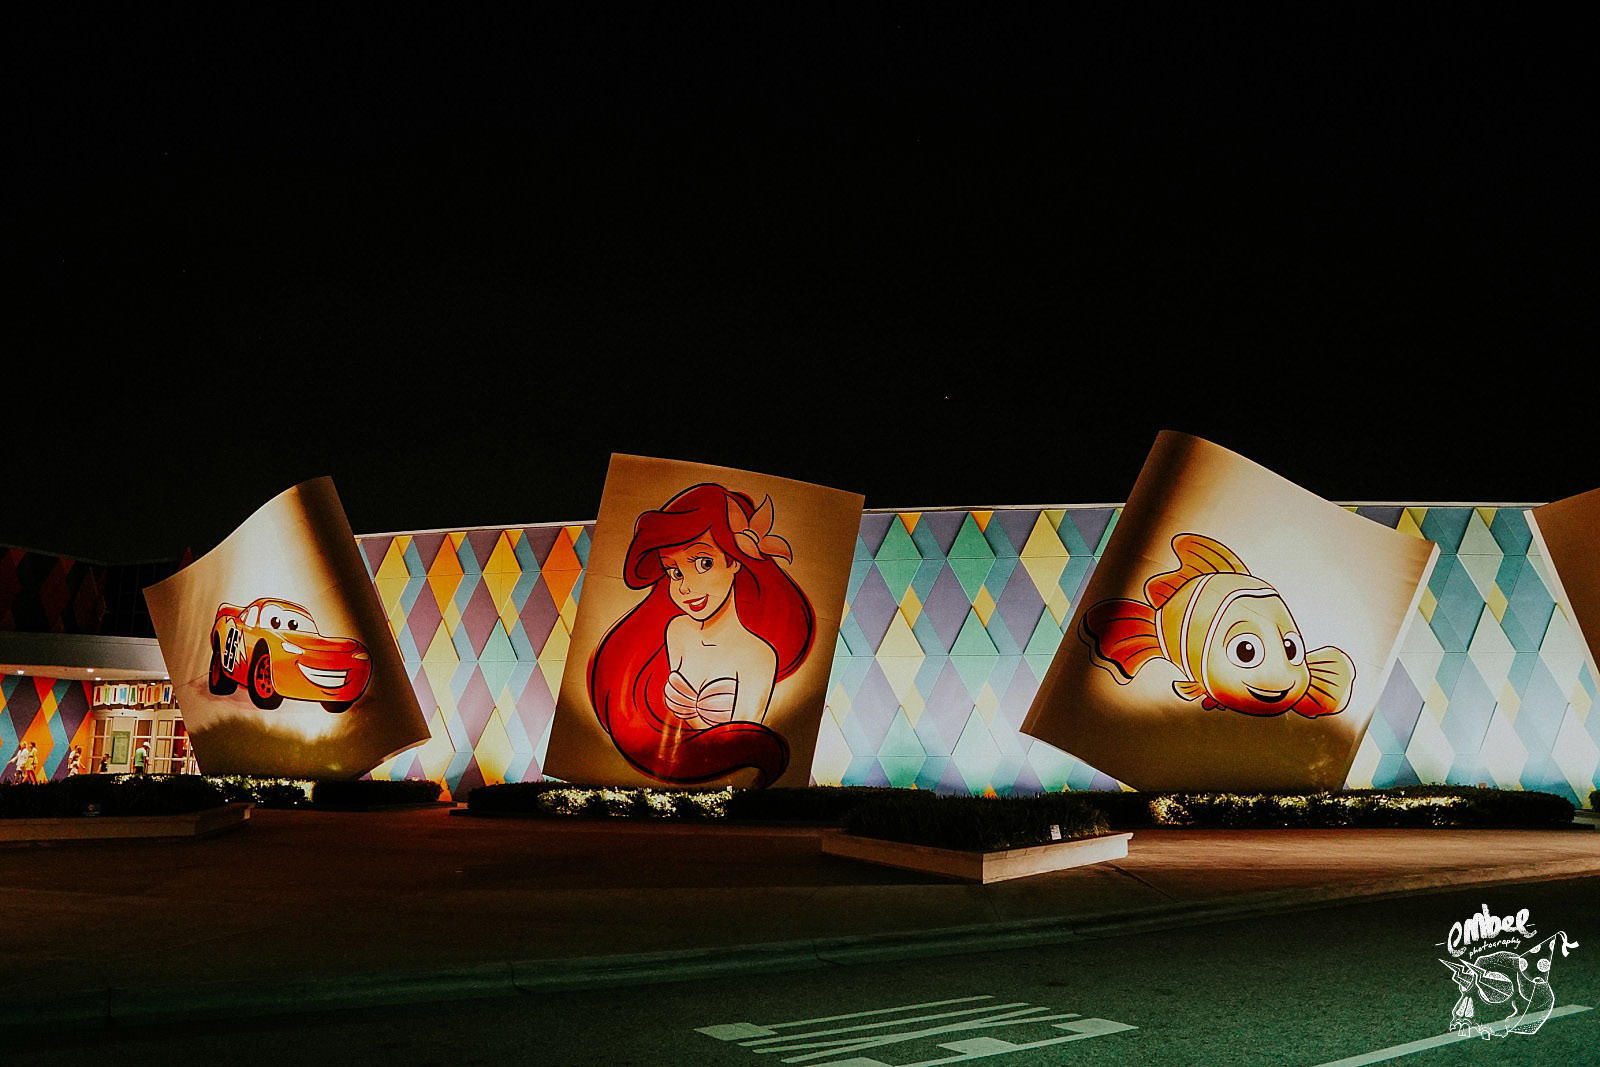 hotel art of animation at night